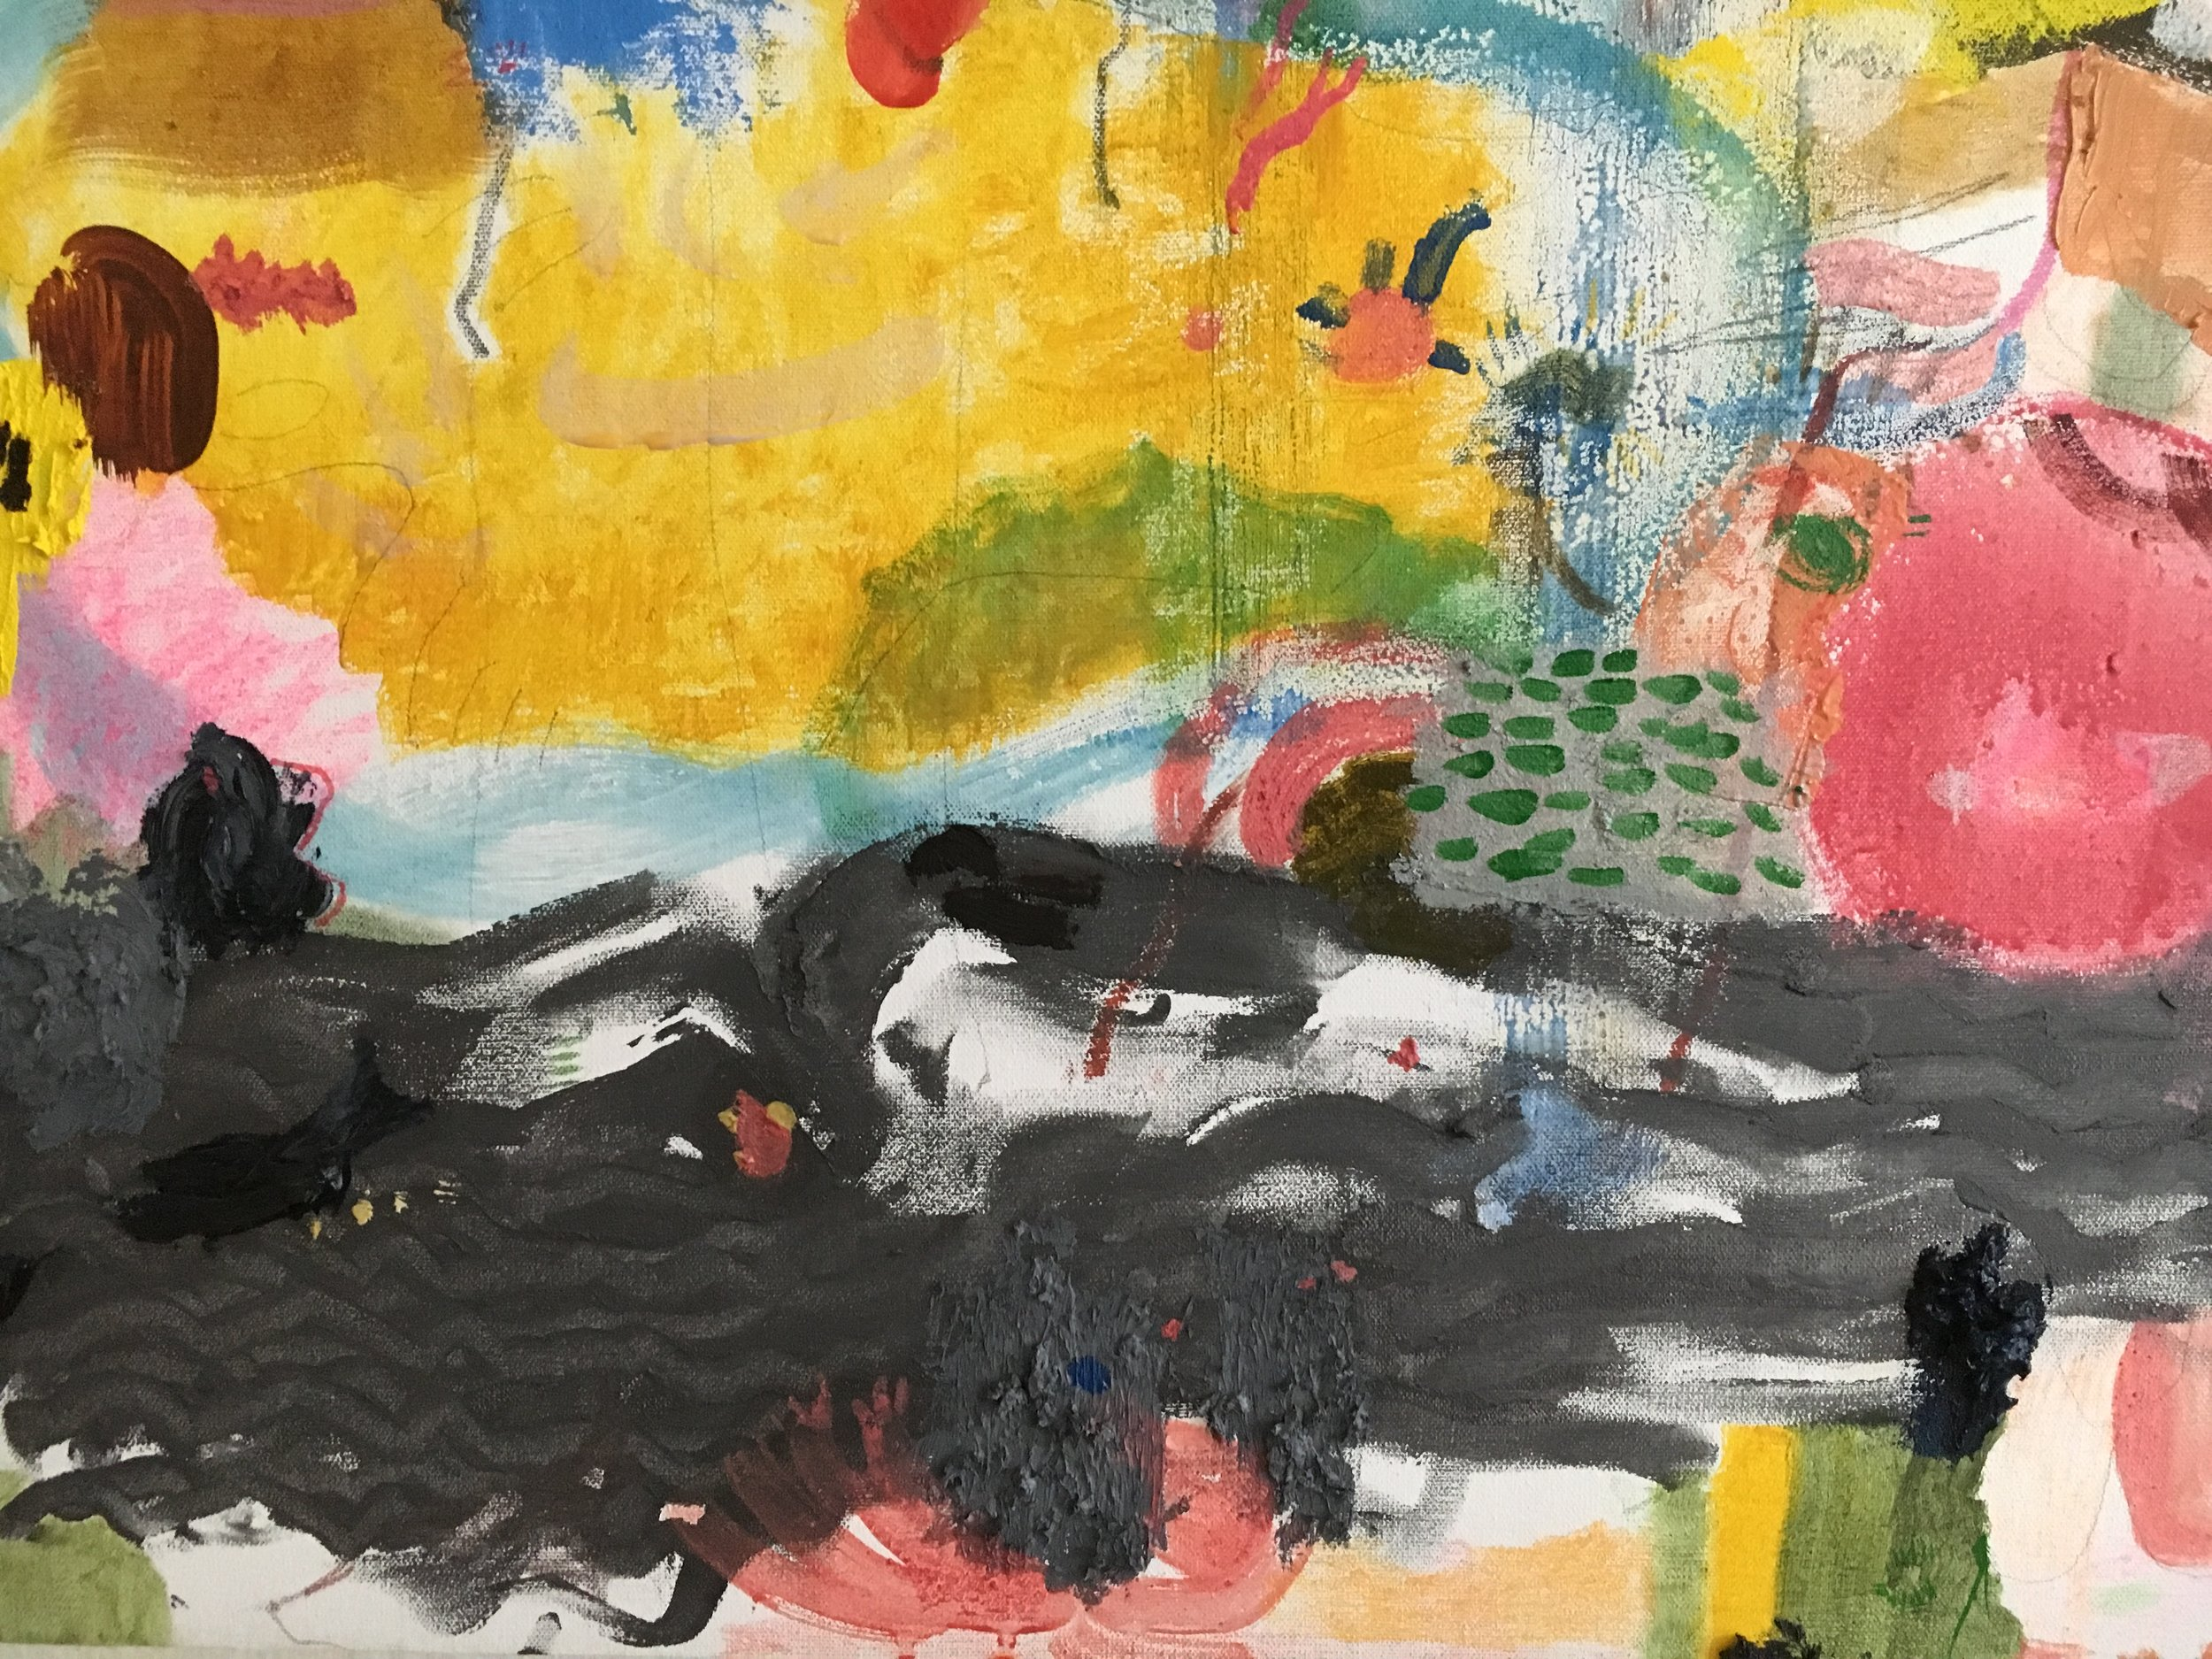 RUNNING [detail, peacock and whales, approximately 7 x 5 inches} Oil, powdered pigment, carbon, graphite, hand set yellow glass chips and muscovite flakes, and crayon on canvas 7 x 3 feet, diptych 2019